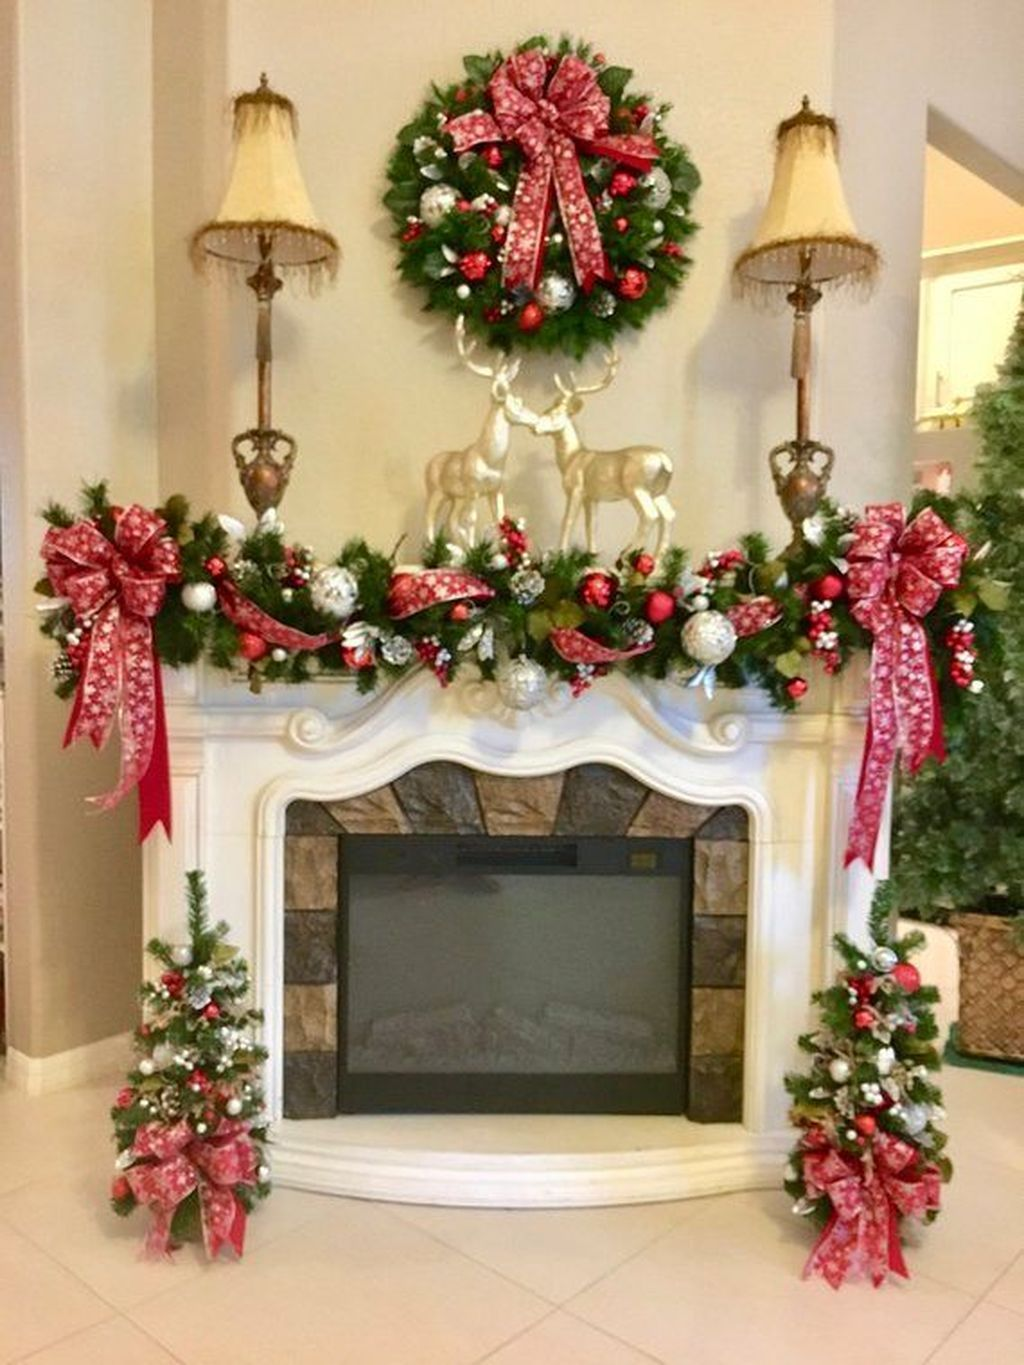 46 Stunning Indoor Christmas Decorations Ideas